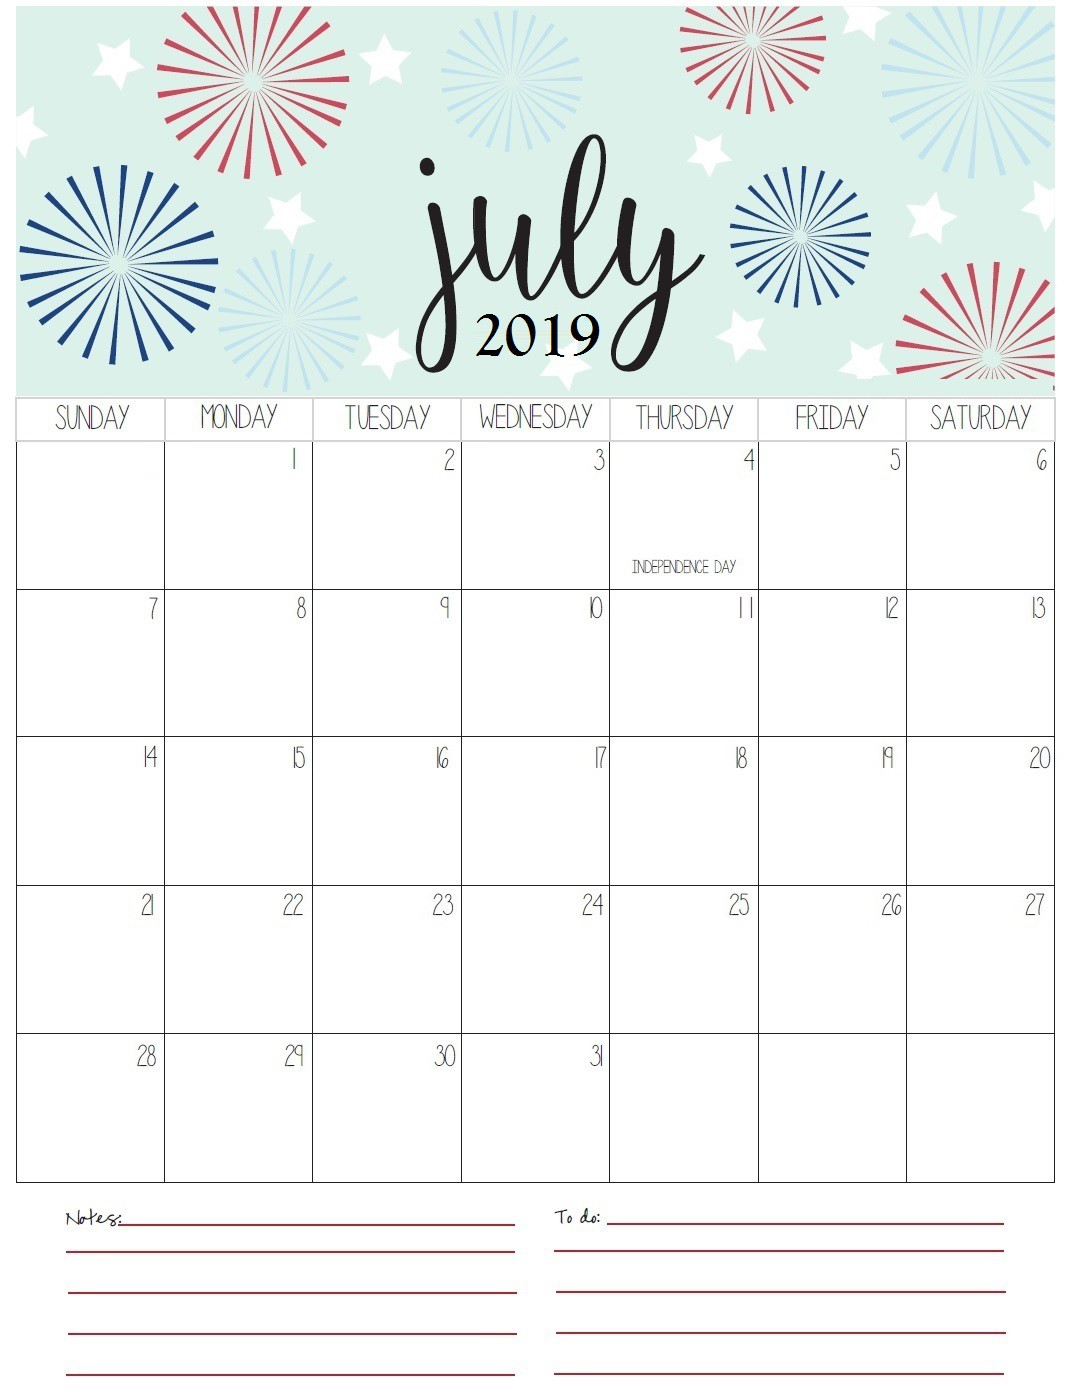 graphic regarding Free Printable July Calendar named Month to month Printable July Calendar 2019 - Totally free Printable